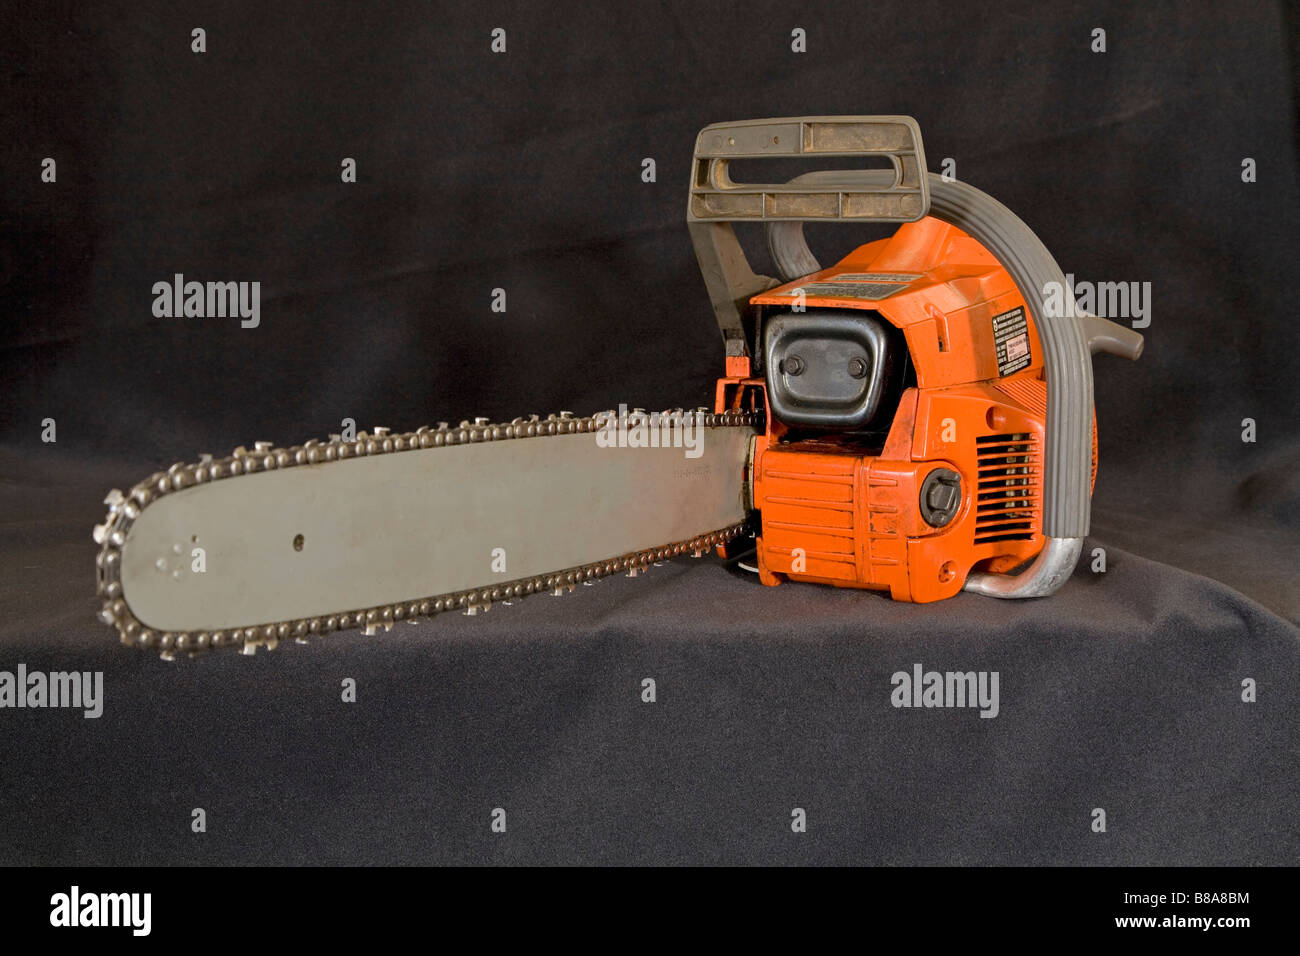 A wood cutter s chain saw or power saw. Stock Photo